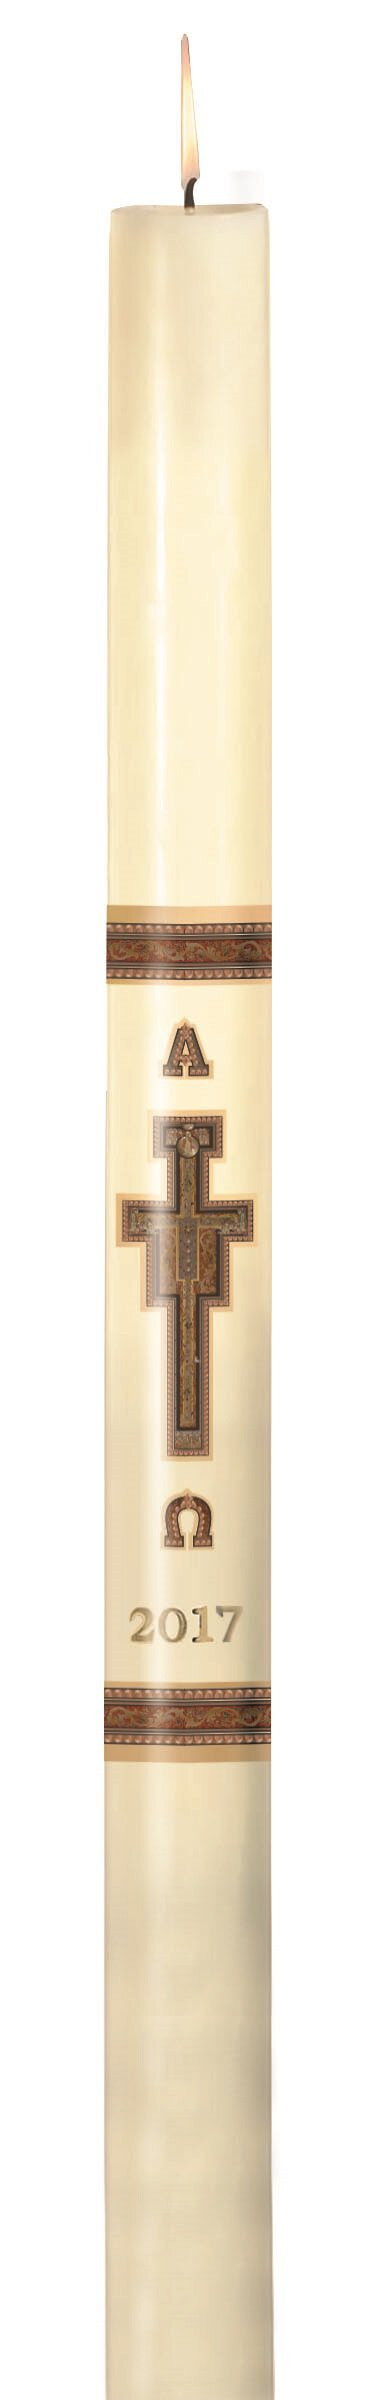 No 4 San Damiano Paschal Candle